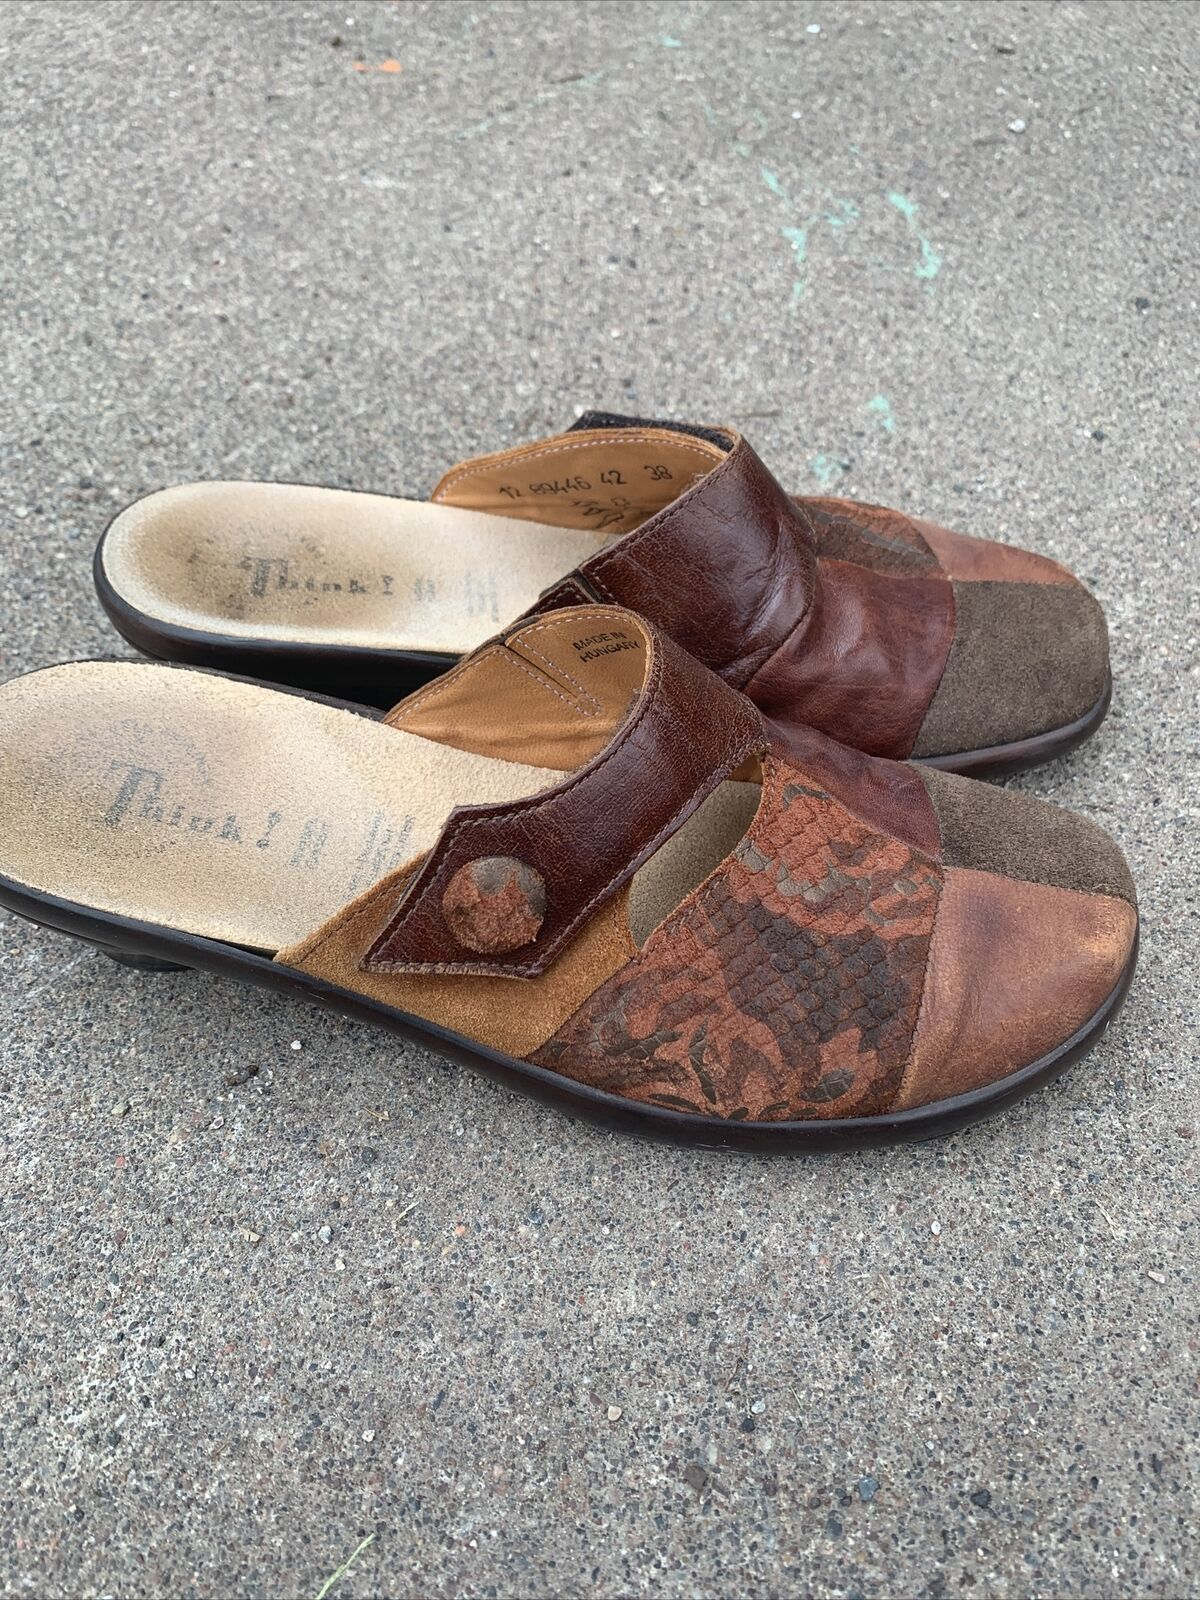 Think! Womens Brown Leather Mules Slides Shoes Size 38 / 8 Slip On 89446